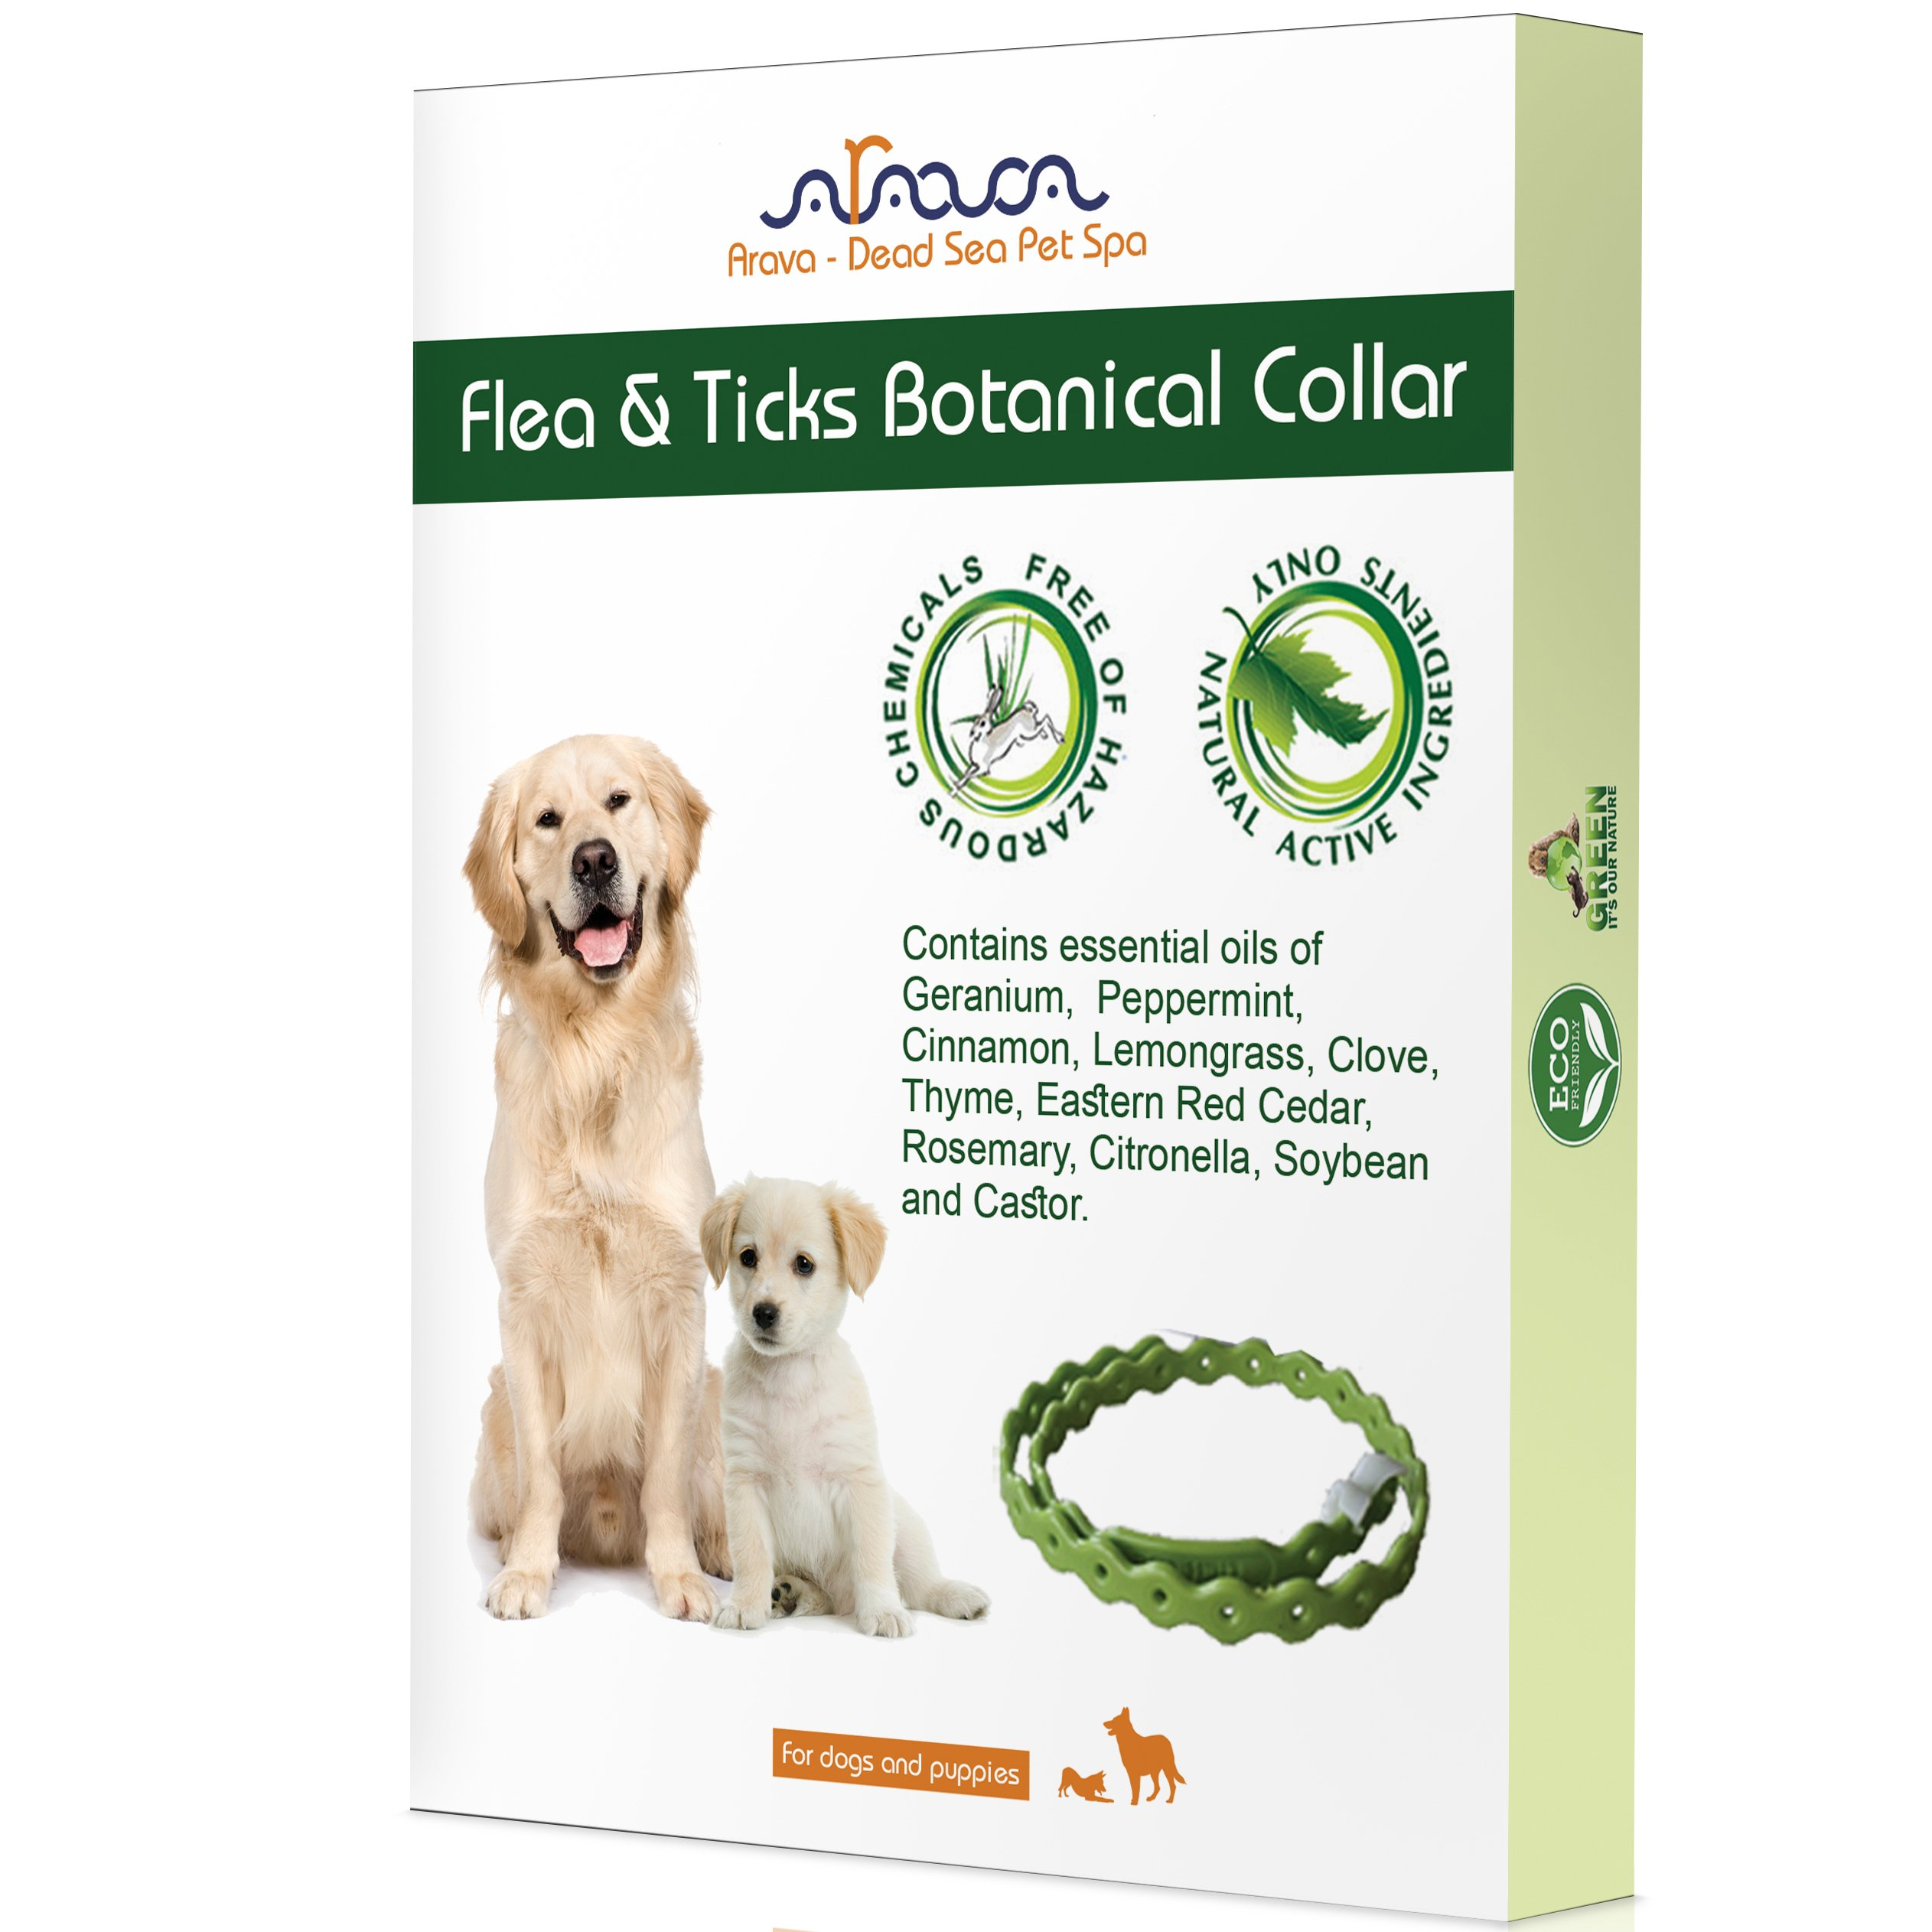 Arava Flea & Tick Prevention Collar - for Dogs & Puppies - Length-25'' - 11 Natural Active Ingredients - Safe for Babies & Pets - Safely Repels Pests - Enhanced Control & Defense - 5 Months Protection